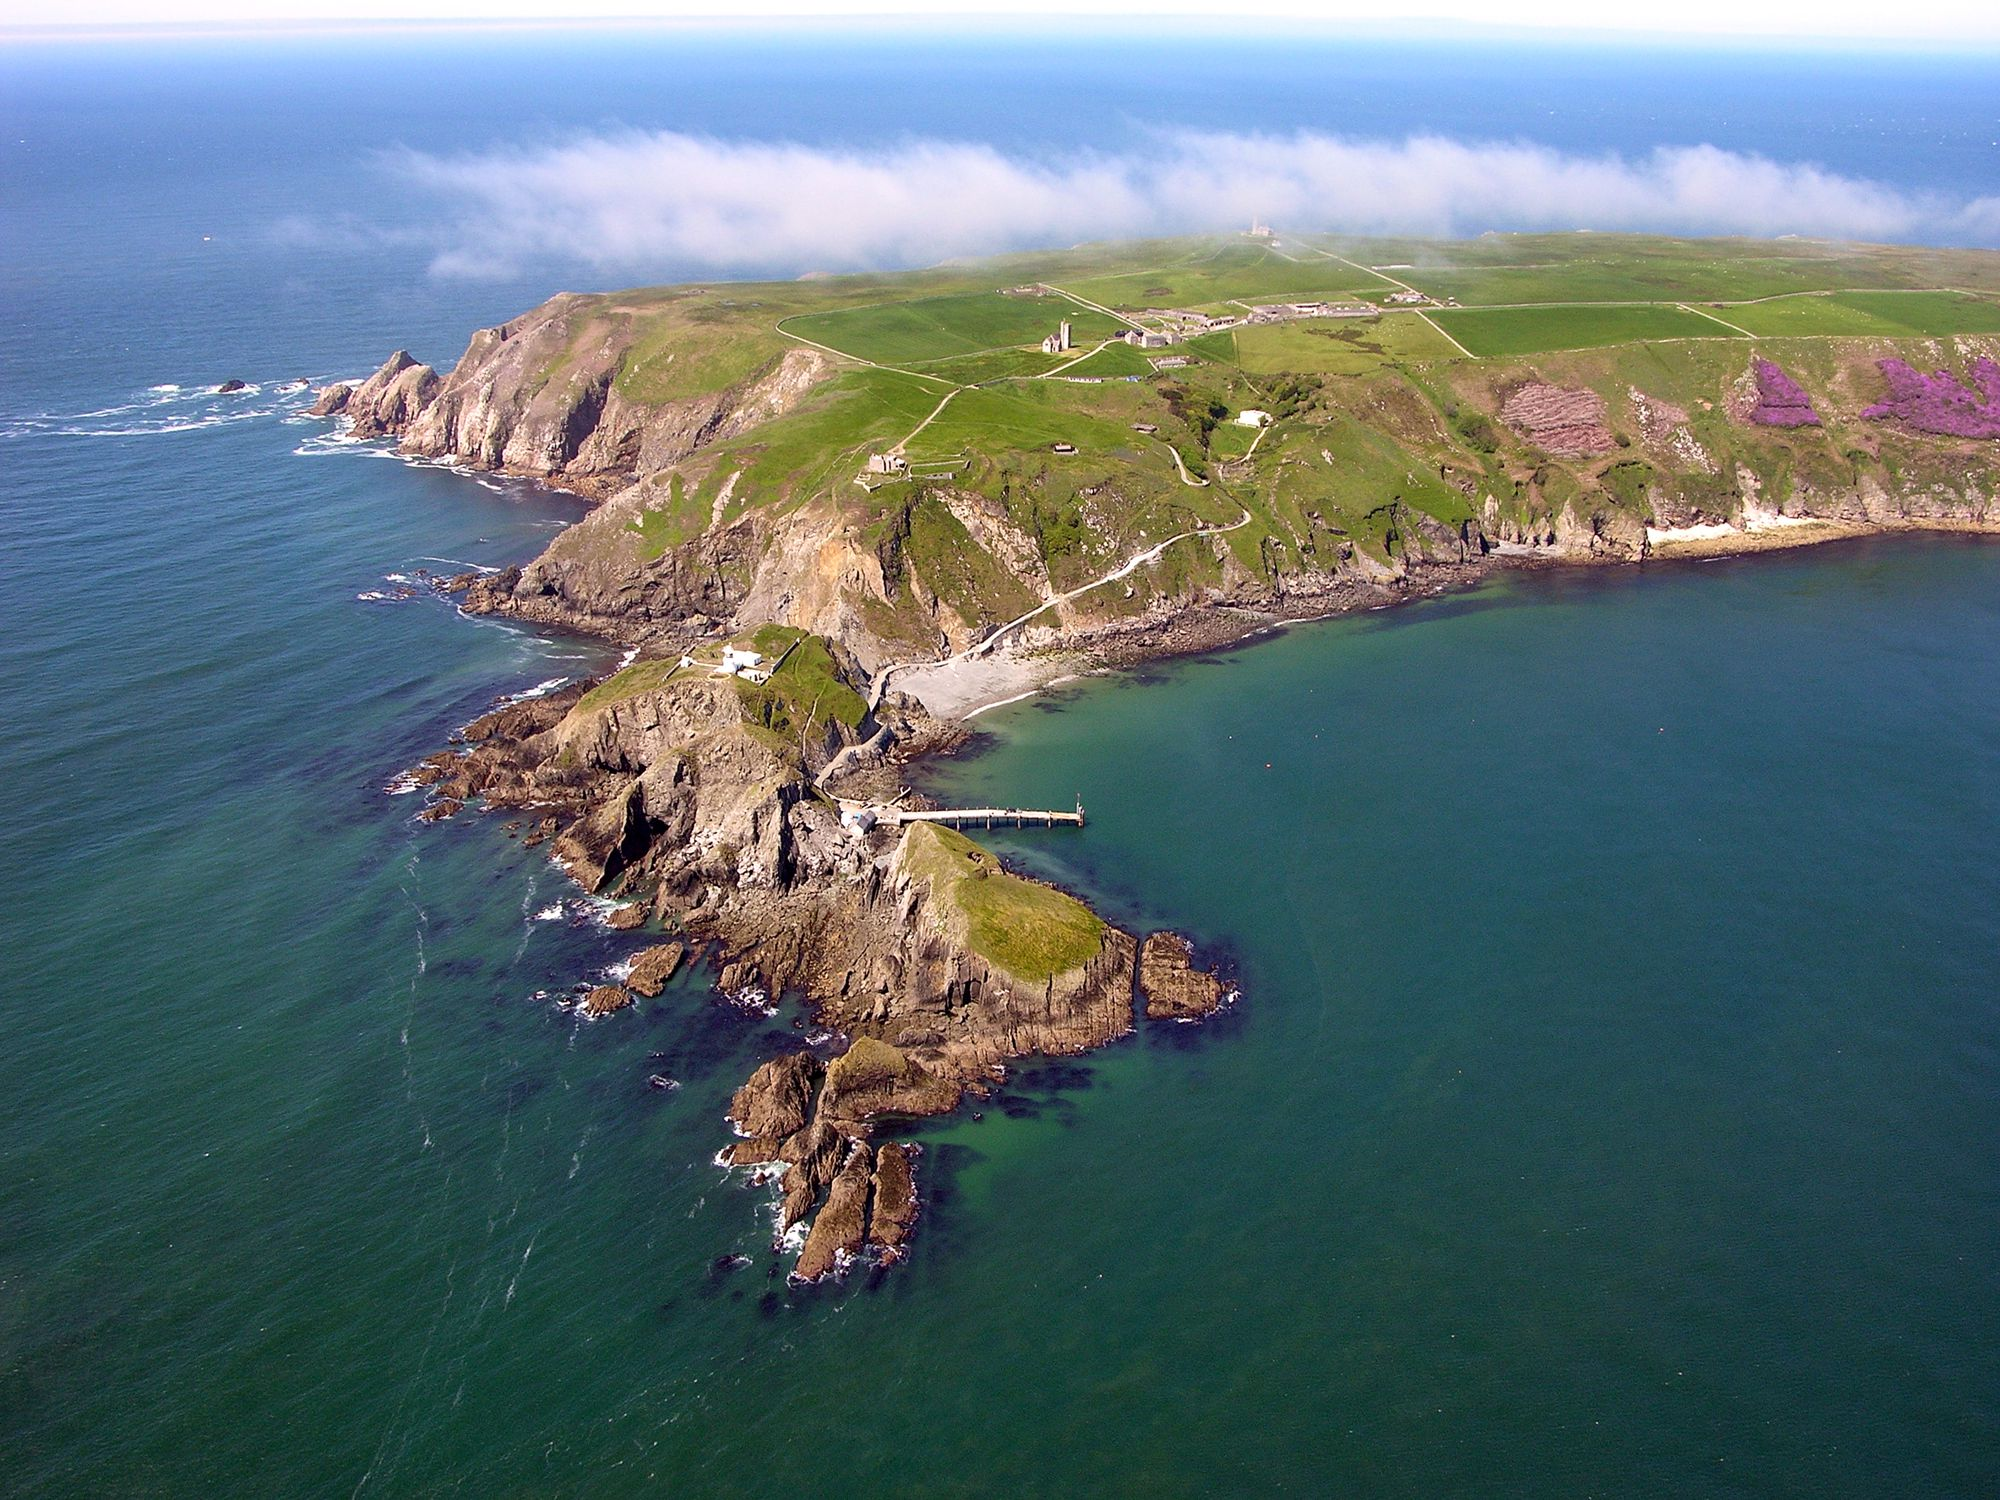 View of Lundy Island